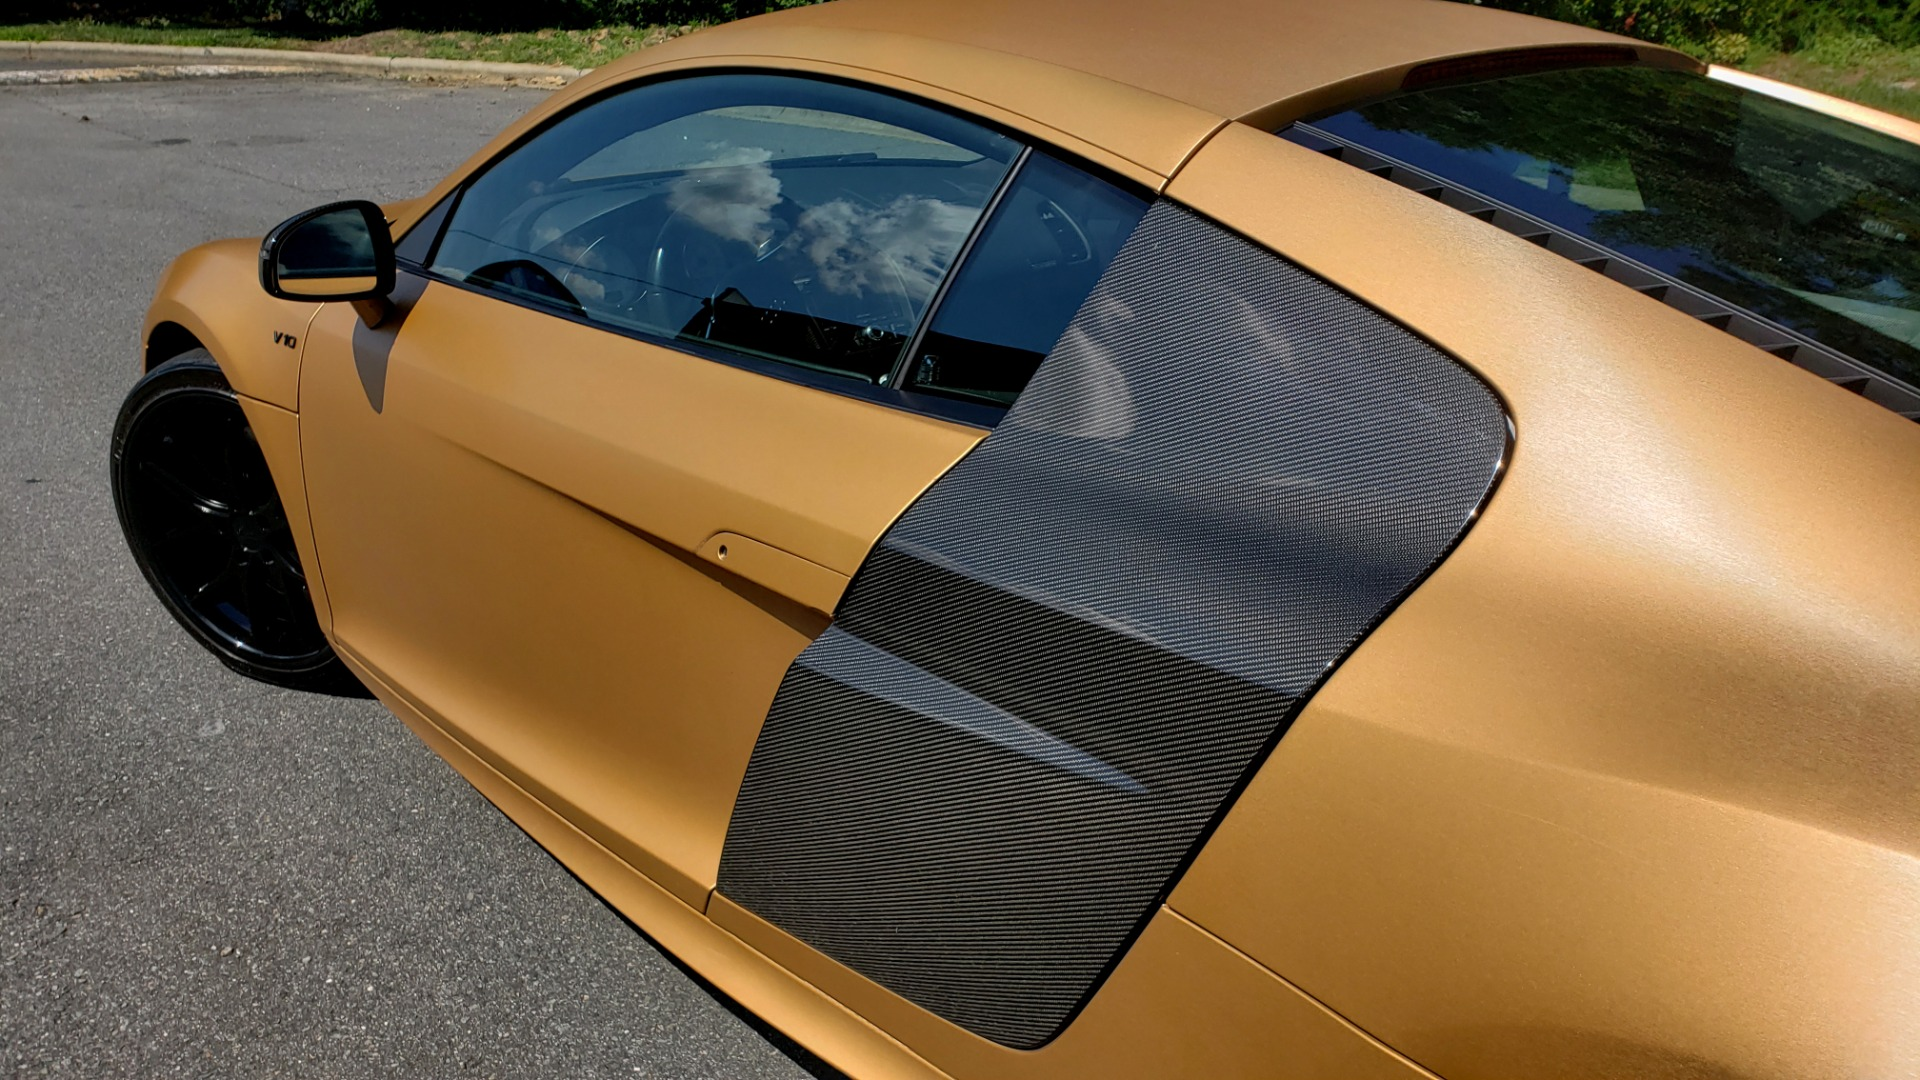 Used 2012 Audi R8 5.2L V10 / AWD / COUPE / NAV / 6-SPD AUTO / CUSTOM WRAP for sale Sold at Formula Imports in Charlotte NC 28227 6